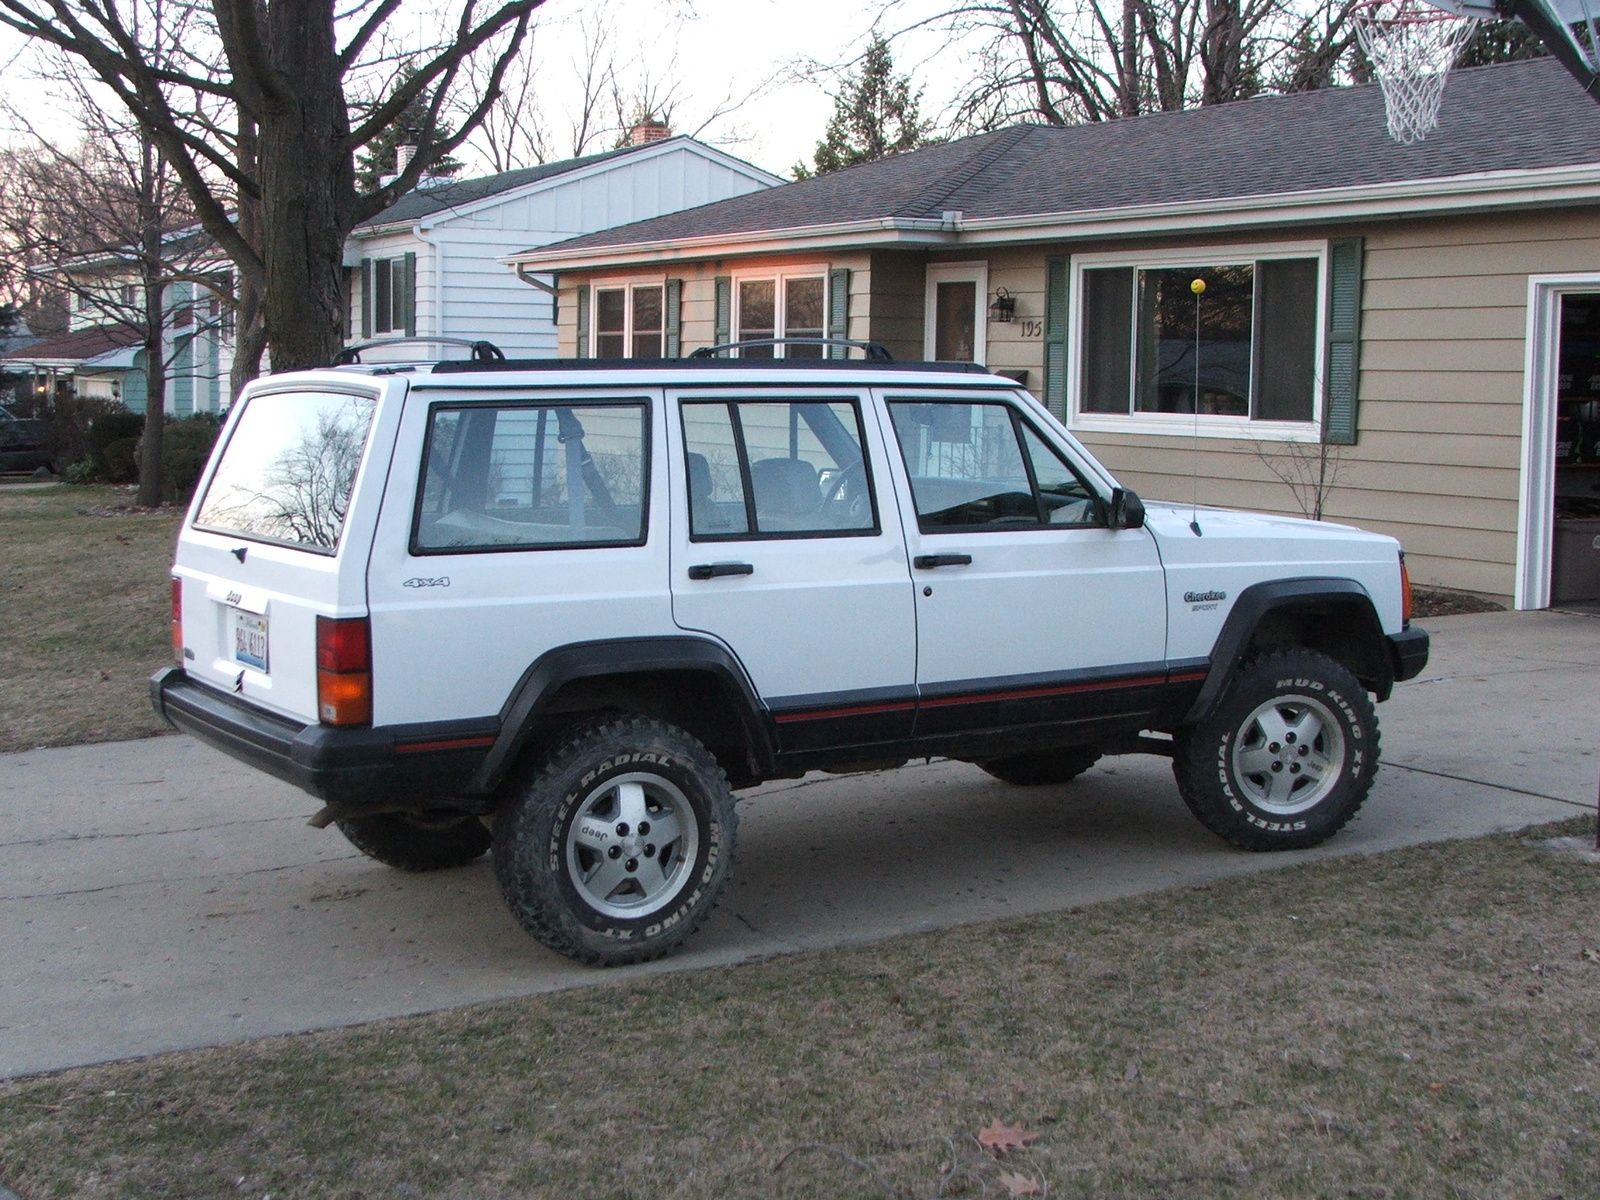 12055 0000 07 also Xj Rock Sliders as well 1994 Jeep Cherokee 4 Dr Sport 4wd Suv Pictures T7173 pi13052520 in addition 25371691863 in addition 70531 Hk. on jeep cherokee 1984